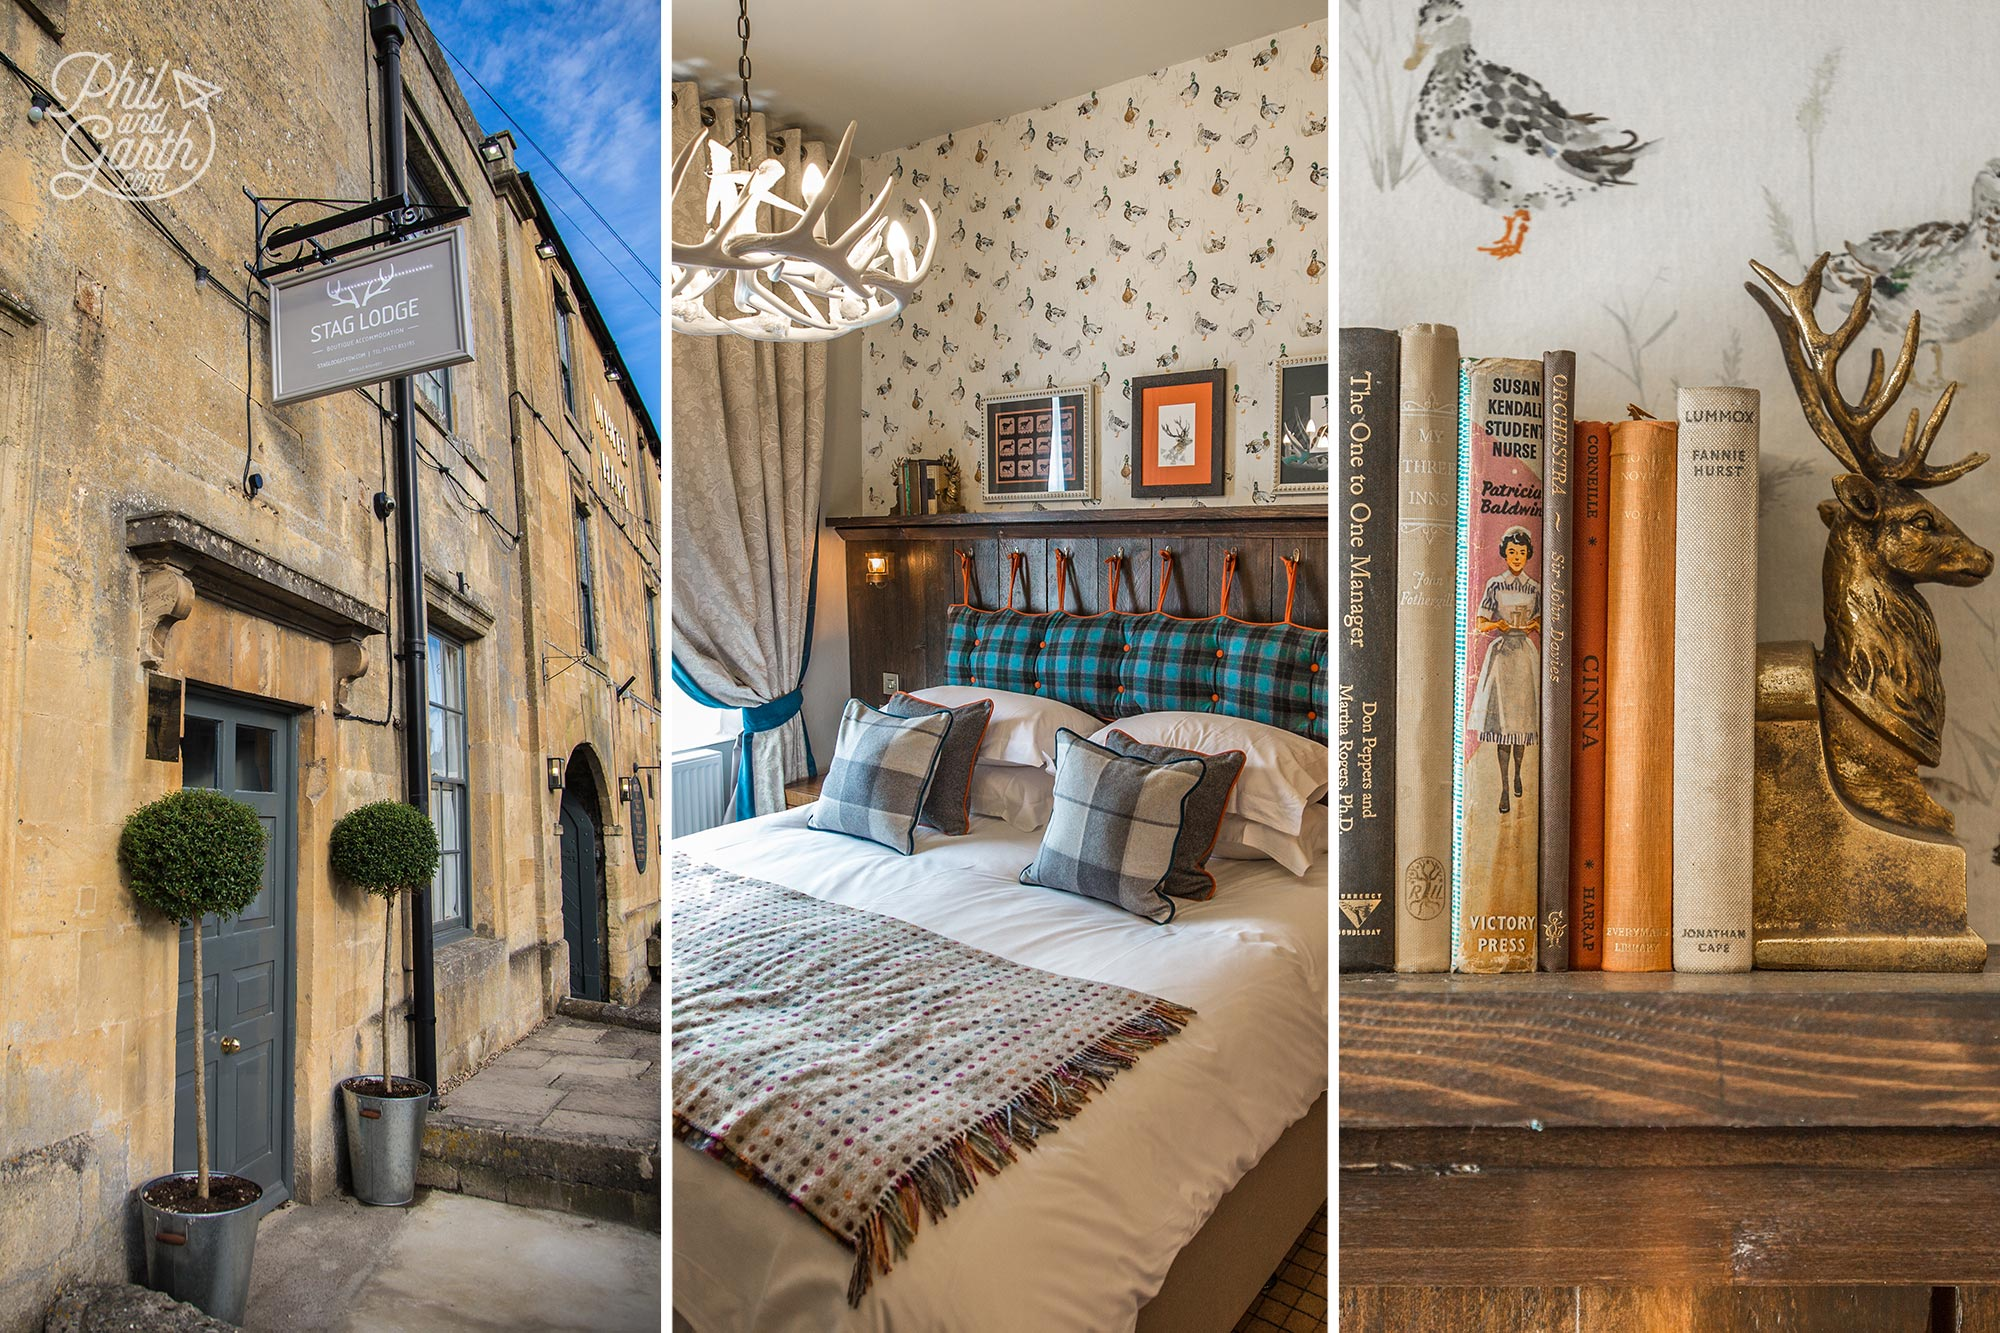 The Stag Lodge - Our chic and affordable accommodation